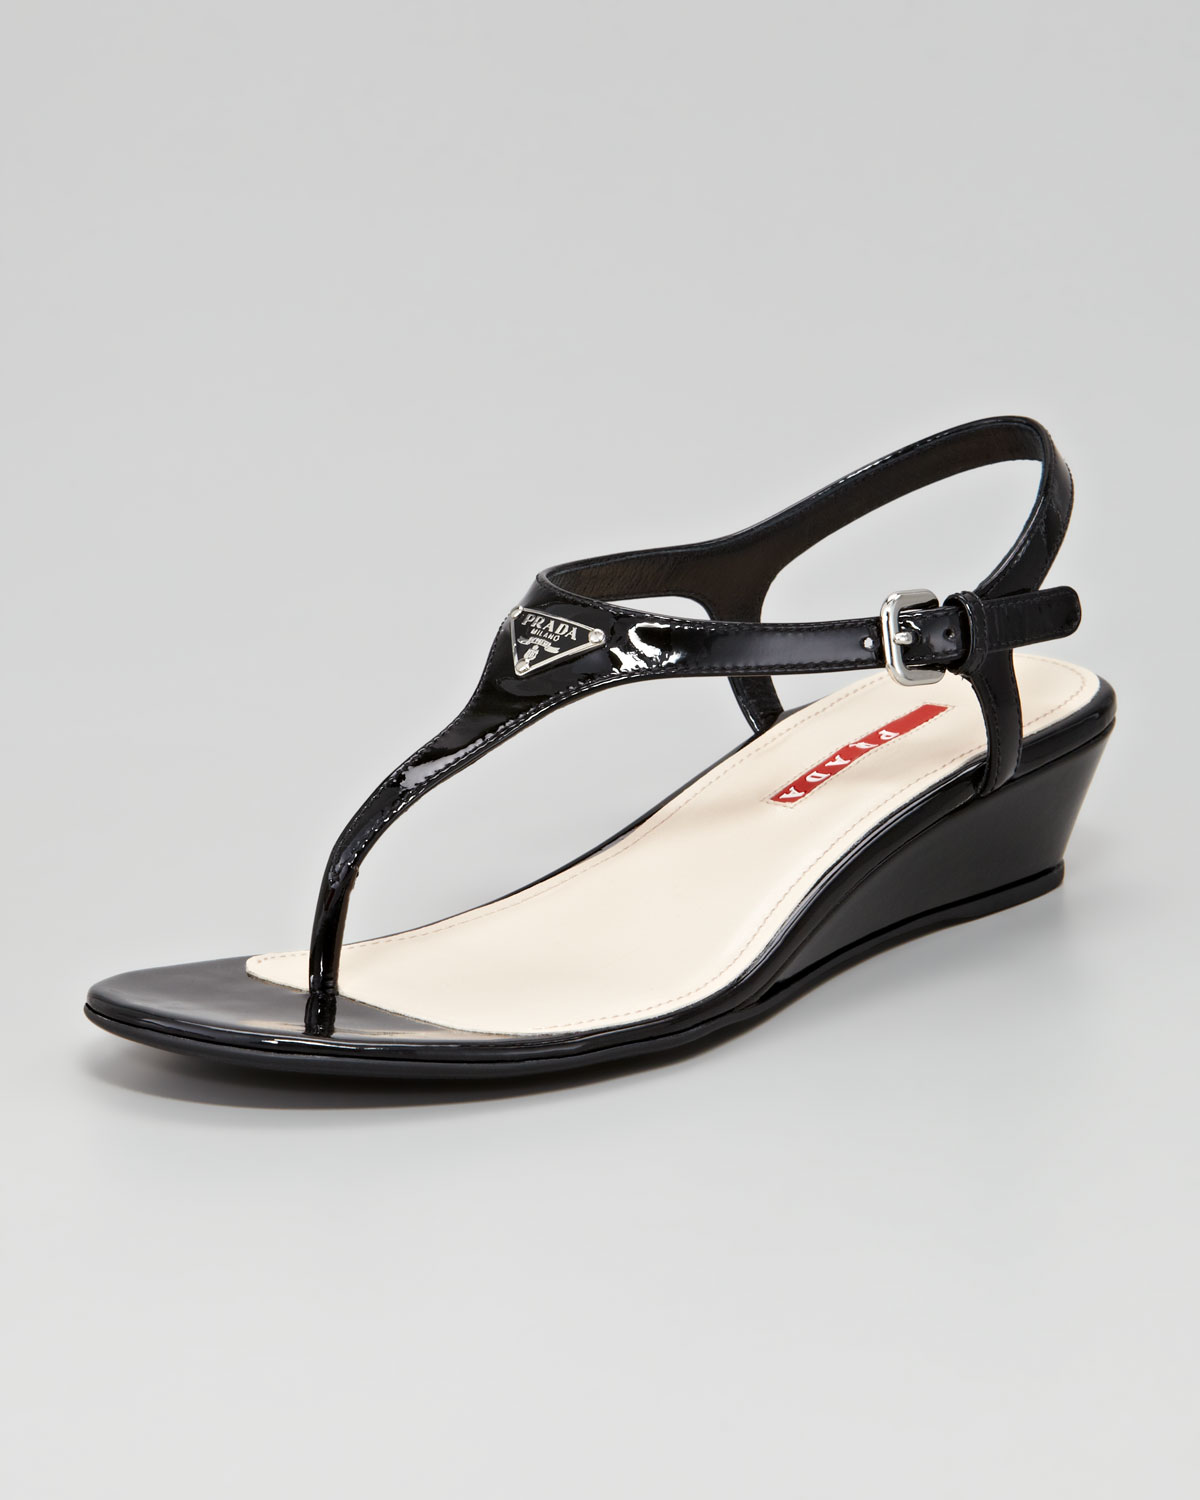 6a0ebf003084 Lyst - Prada Patent Logo Demi Wedge Sandal in Black